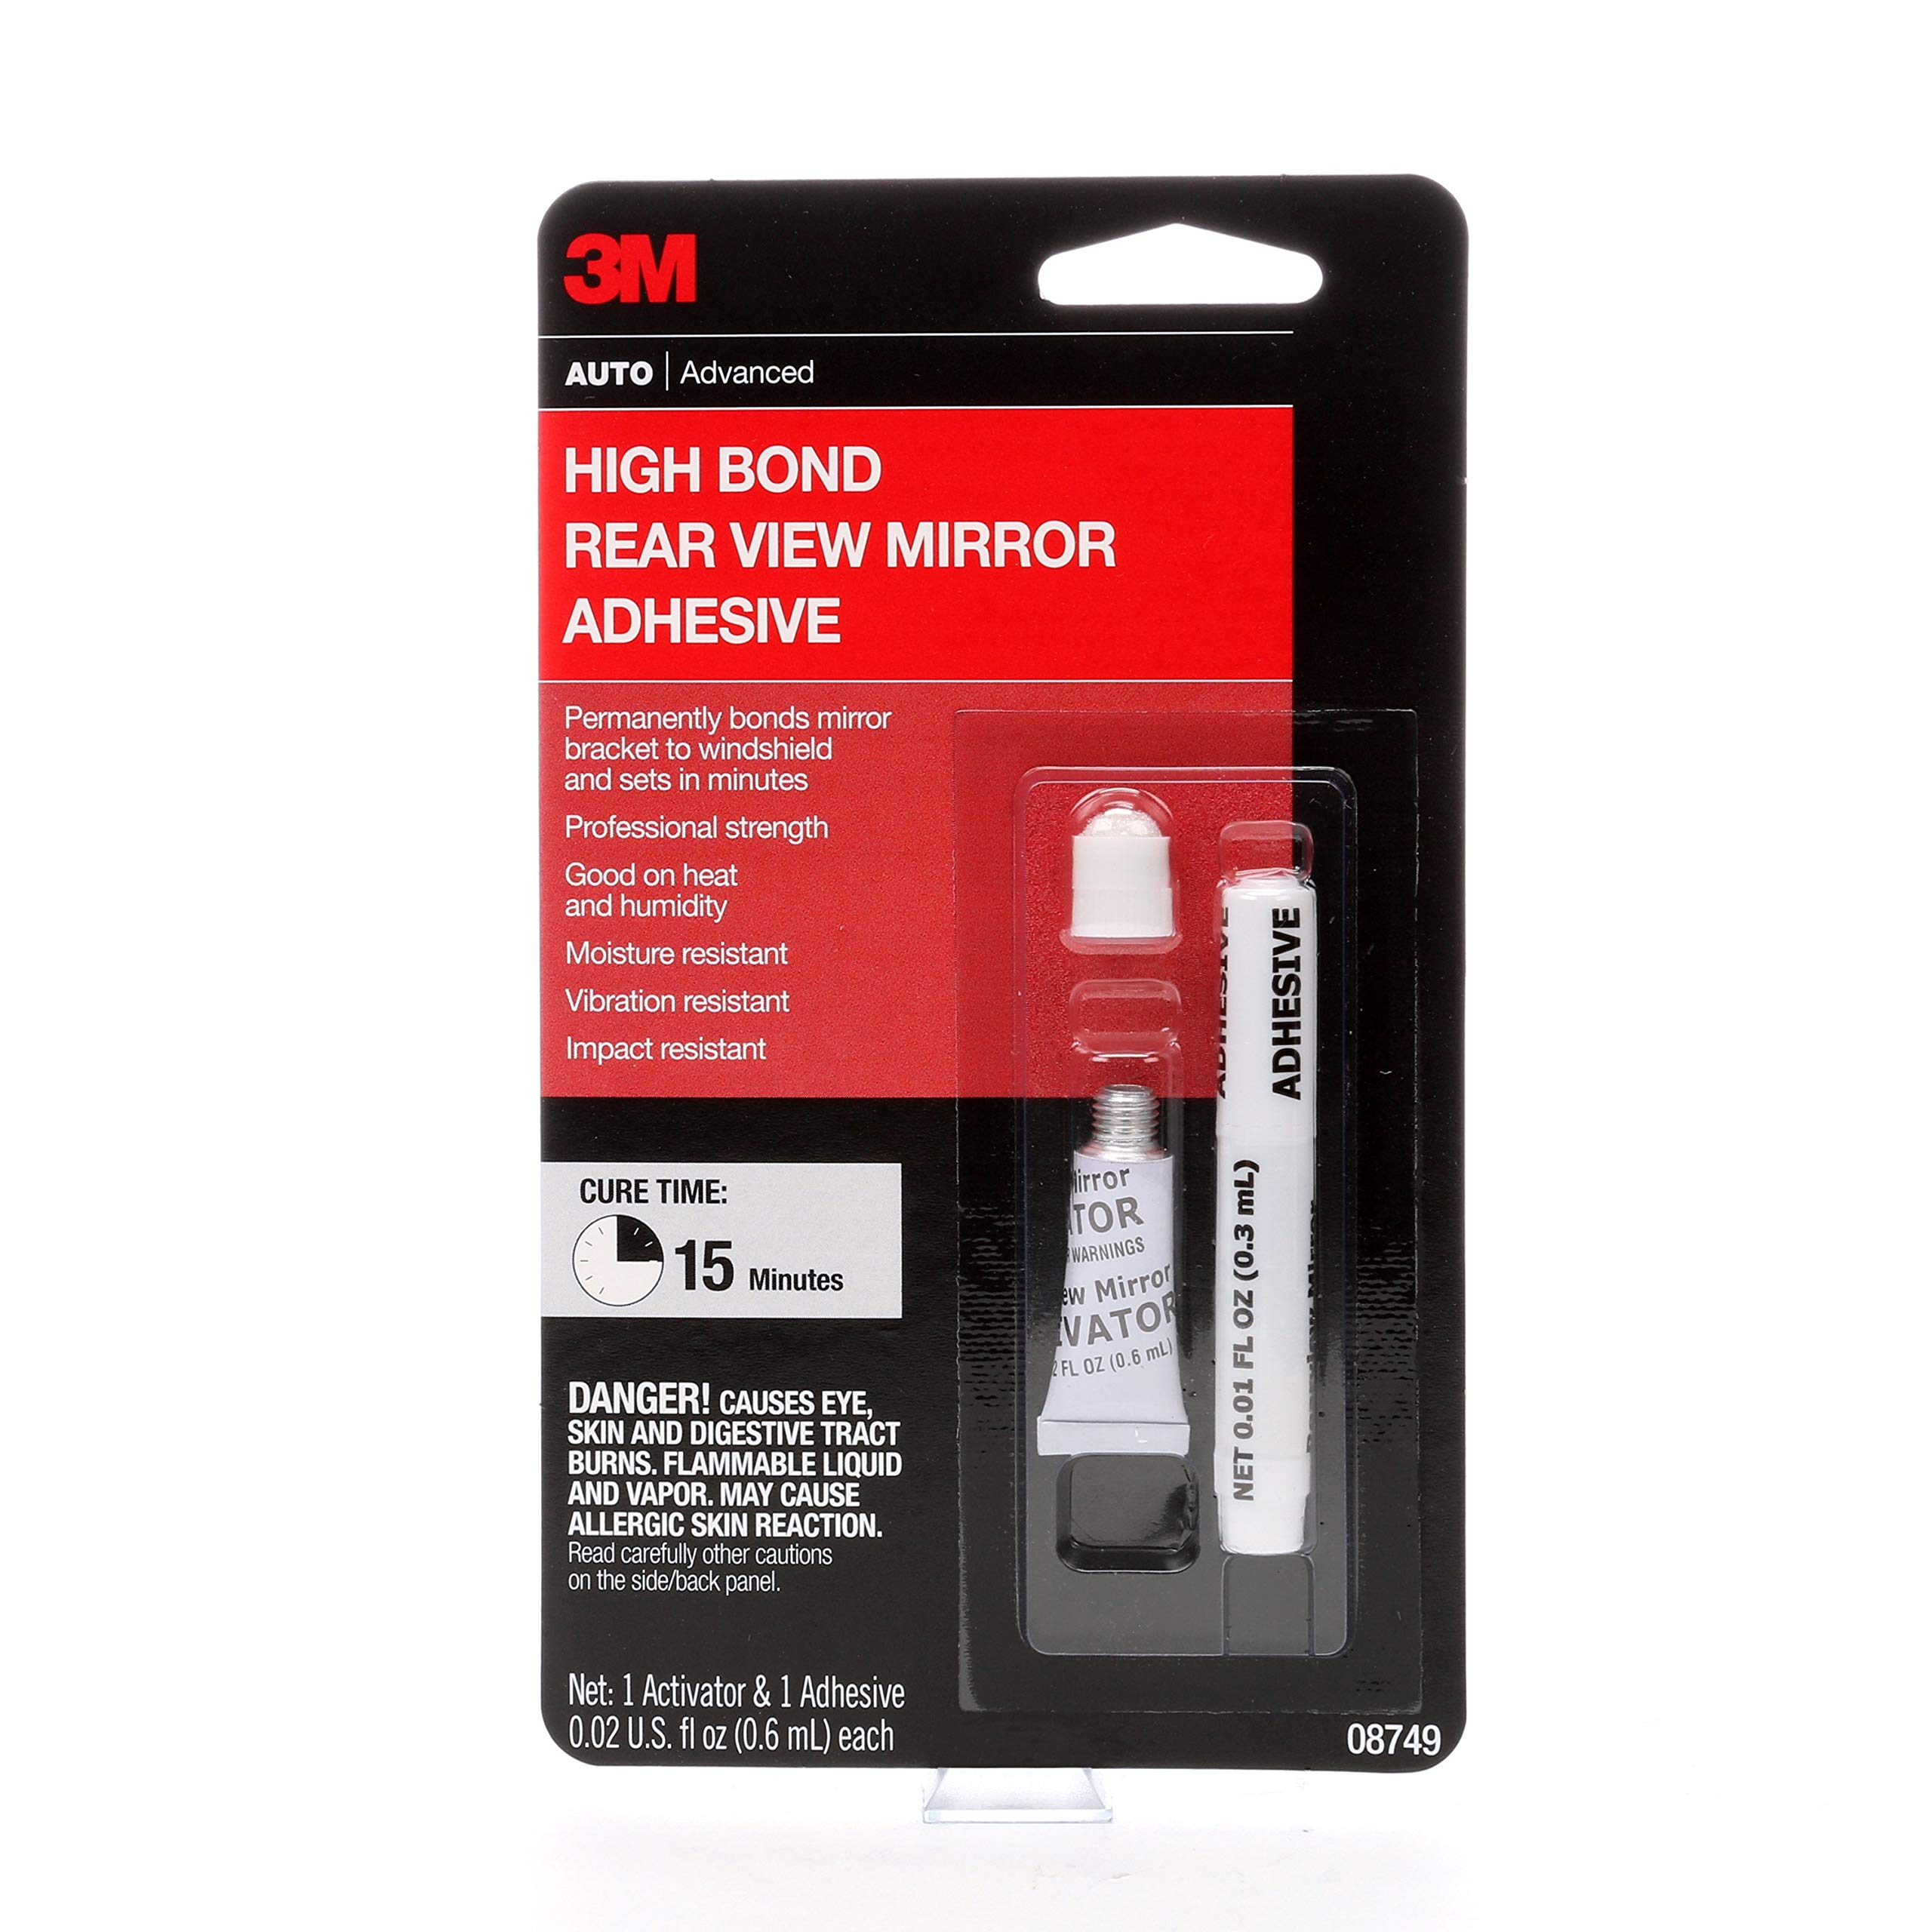 3M High Bond Rearview Mirror Adhesive, 08749, 0.02 fl oz